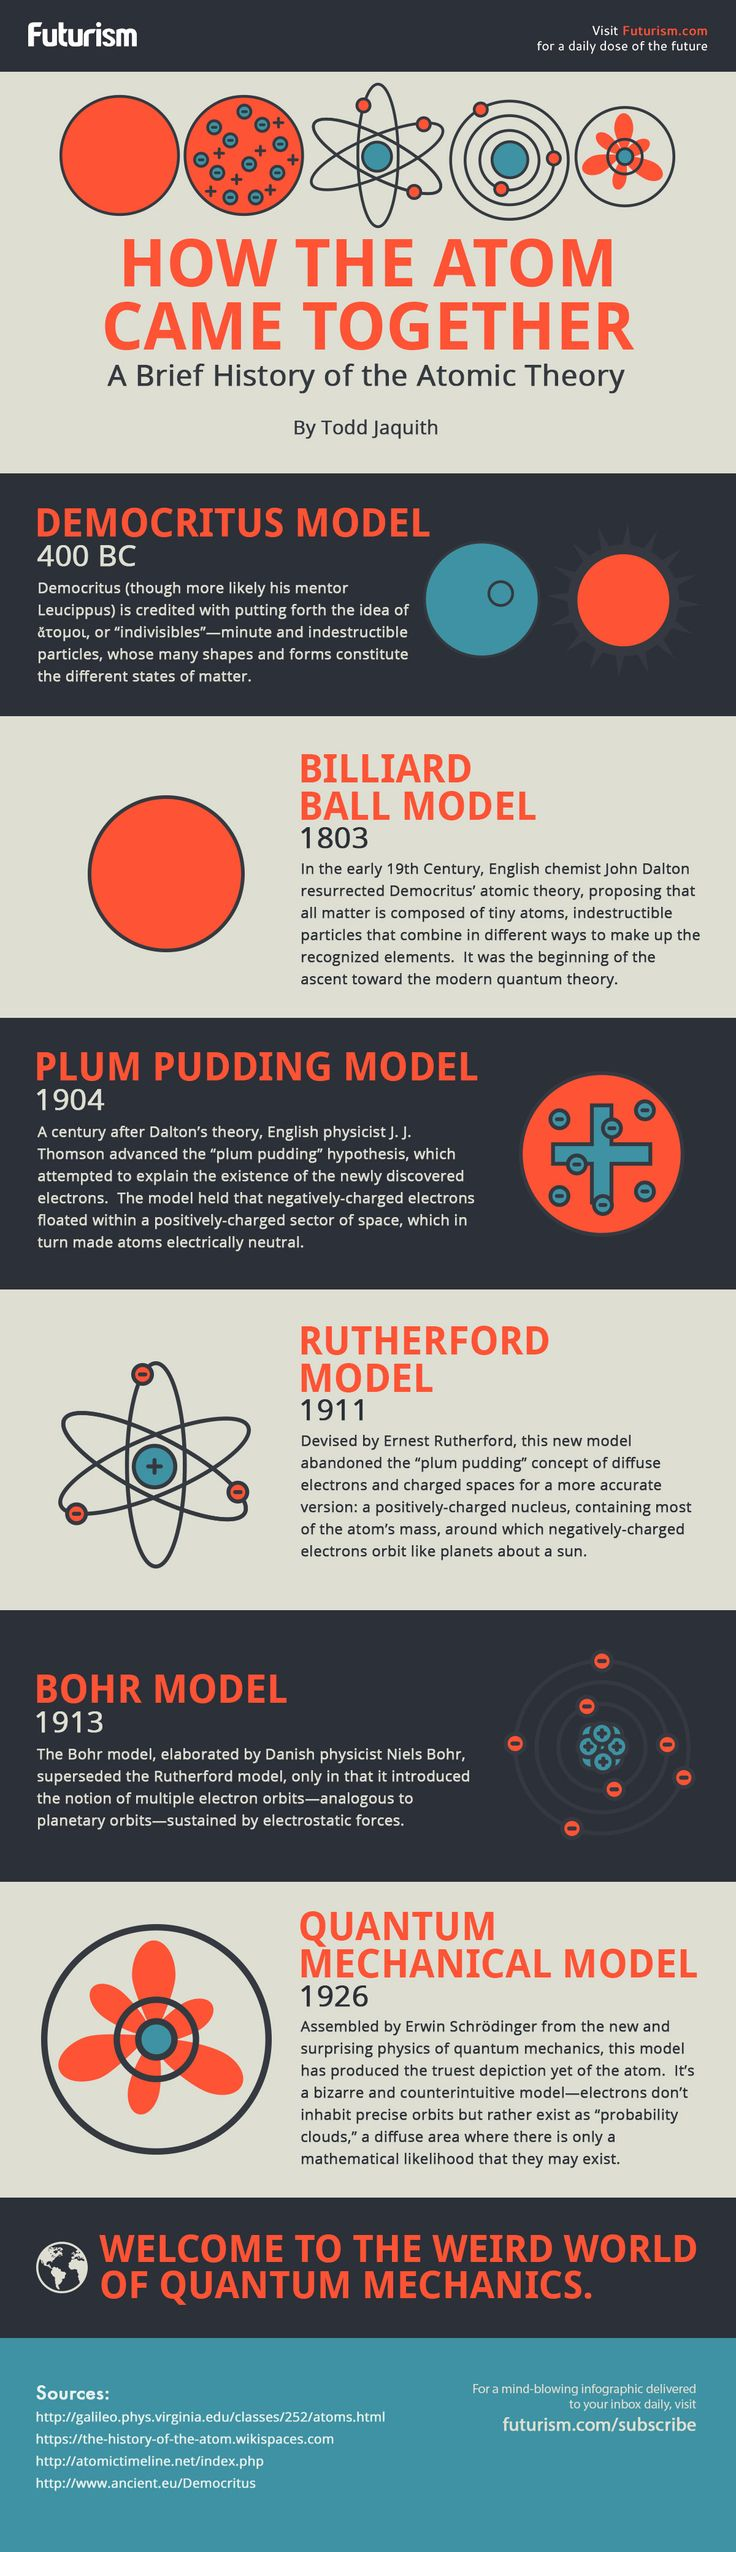 We condensed 2,500 years of atomic theory into a single infographic.